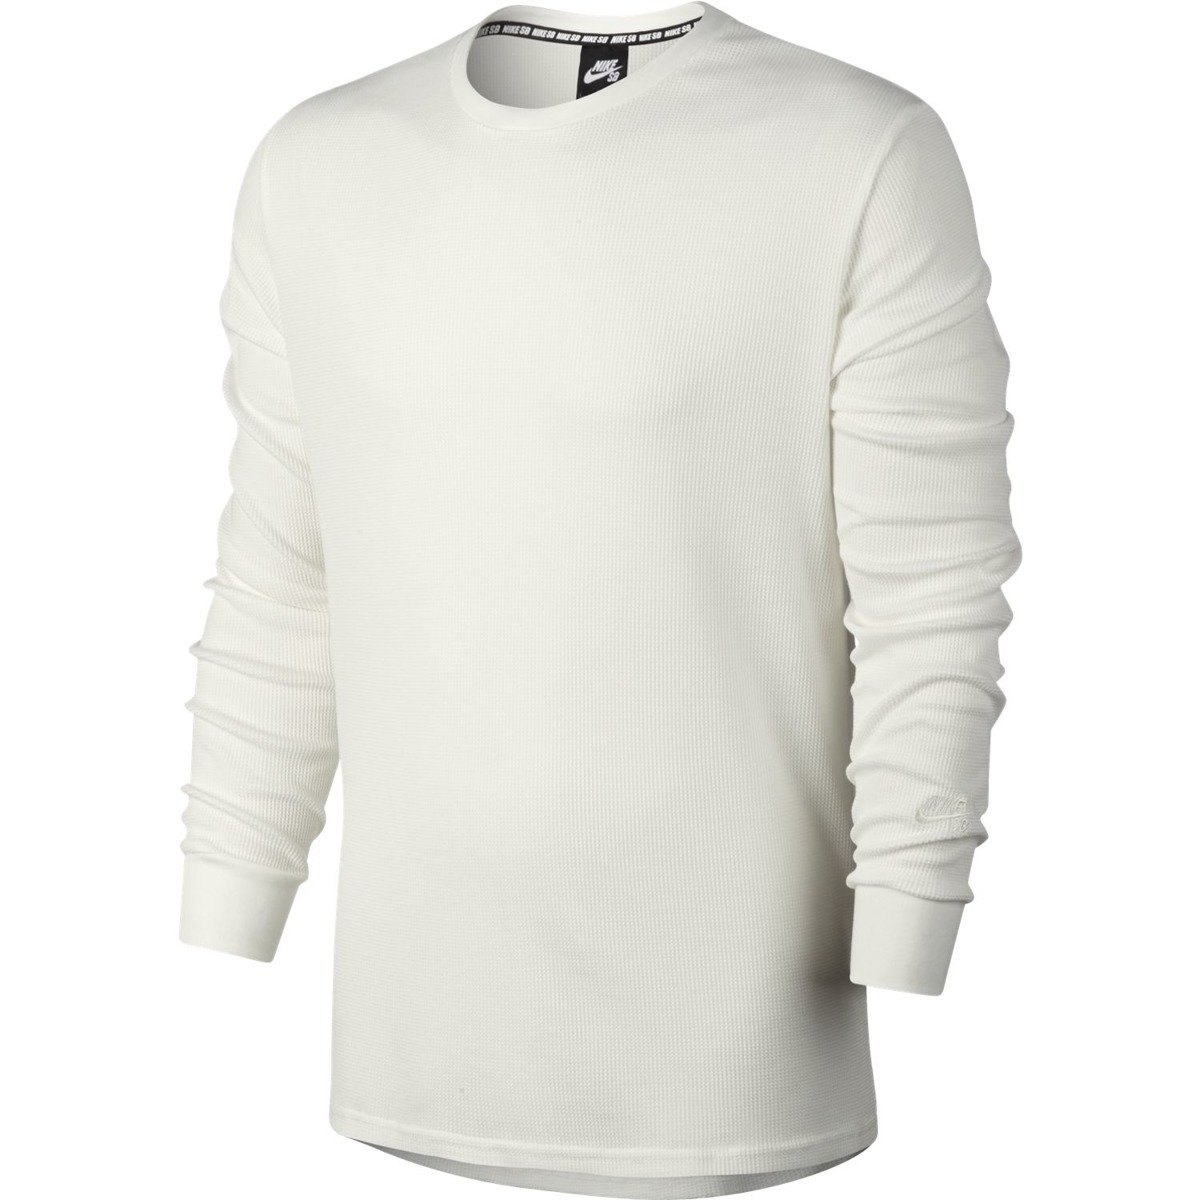 2473bba7 Nike SB Long-Sleeve Thermal Top Ivory/ivory white | Clothes \ T-shirts \  Longsleeves Brands \ Nike SB SALE \ Sale - 40% \ Longsleeve Odzież \ Nike  SB \ Nike ...